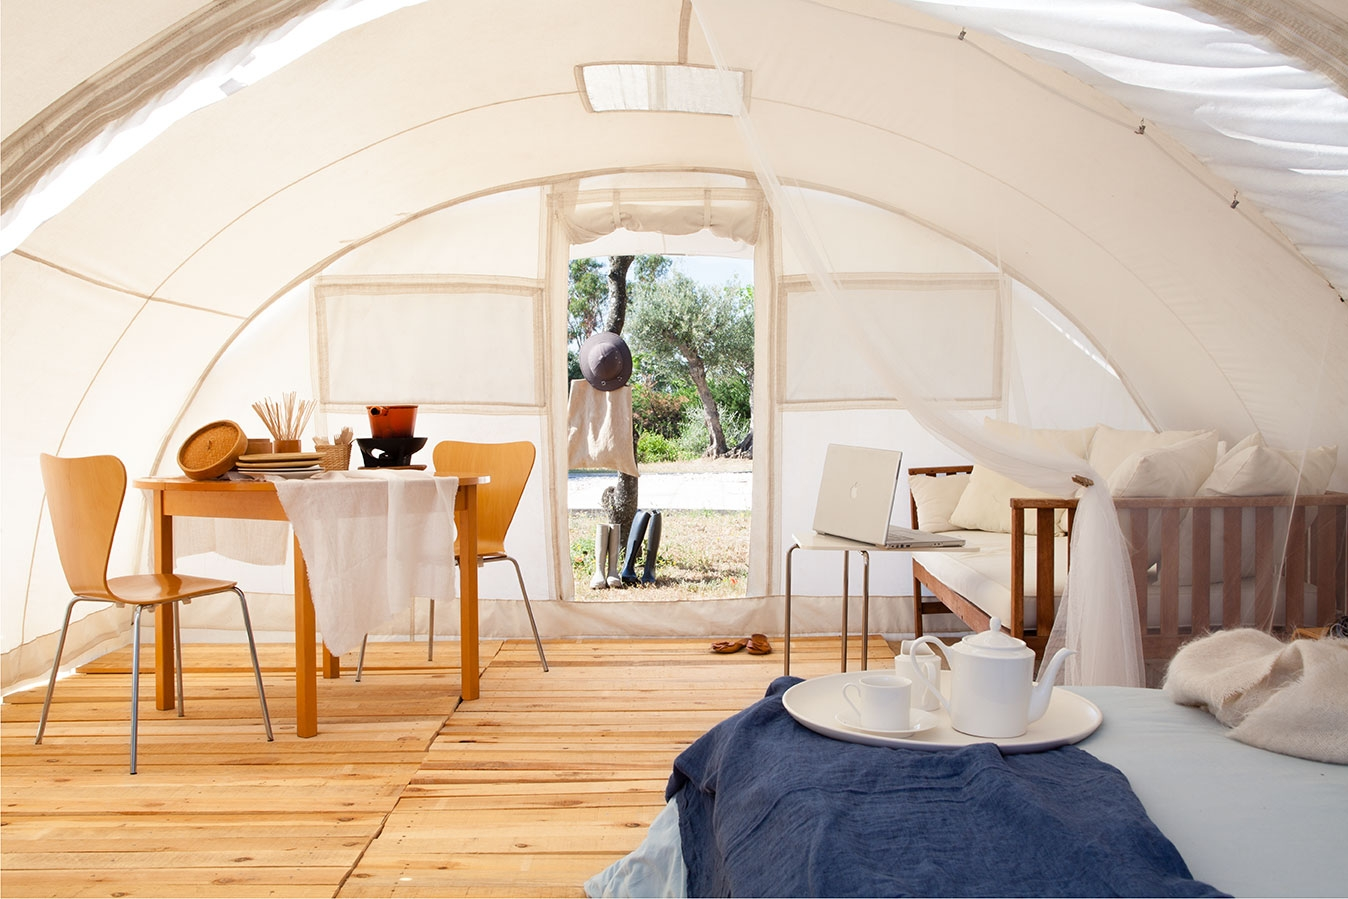 Ctents Glamping Luxury tent